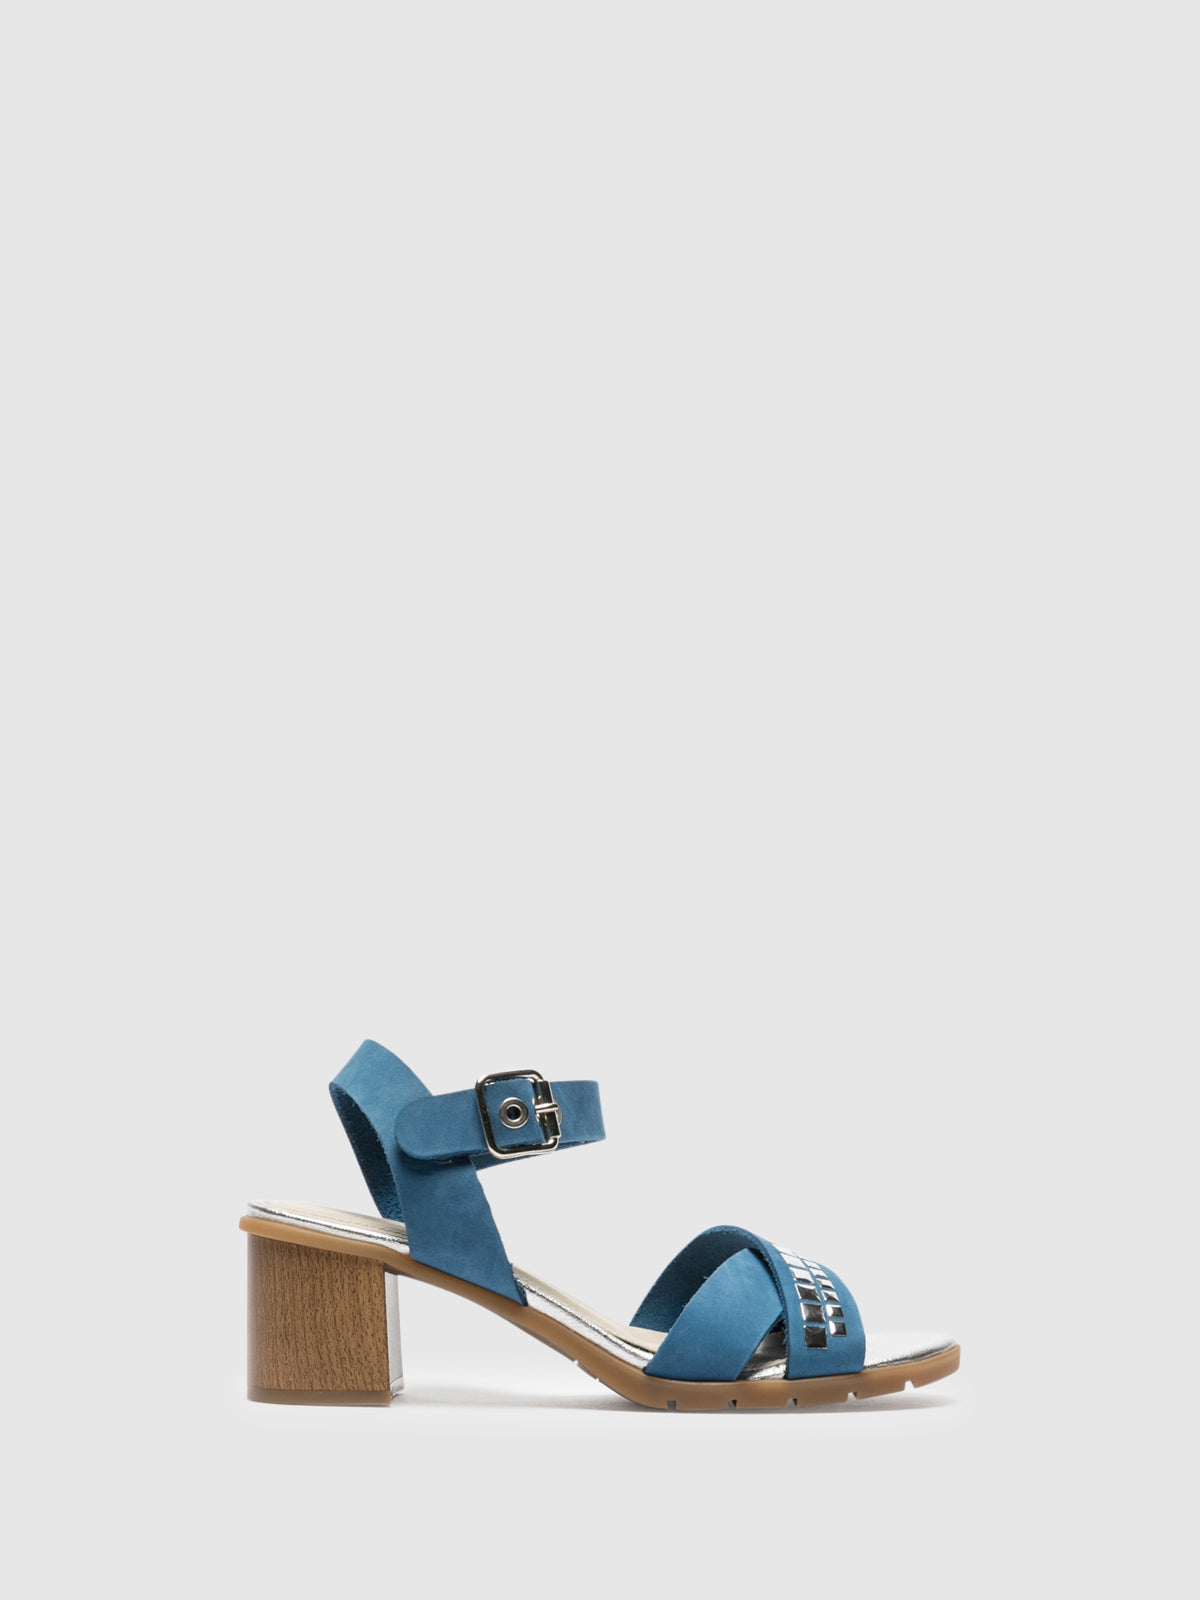 The Flexx Blue Sling-Back Sandals